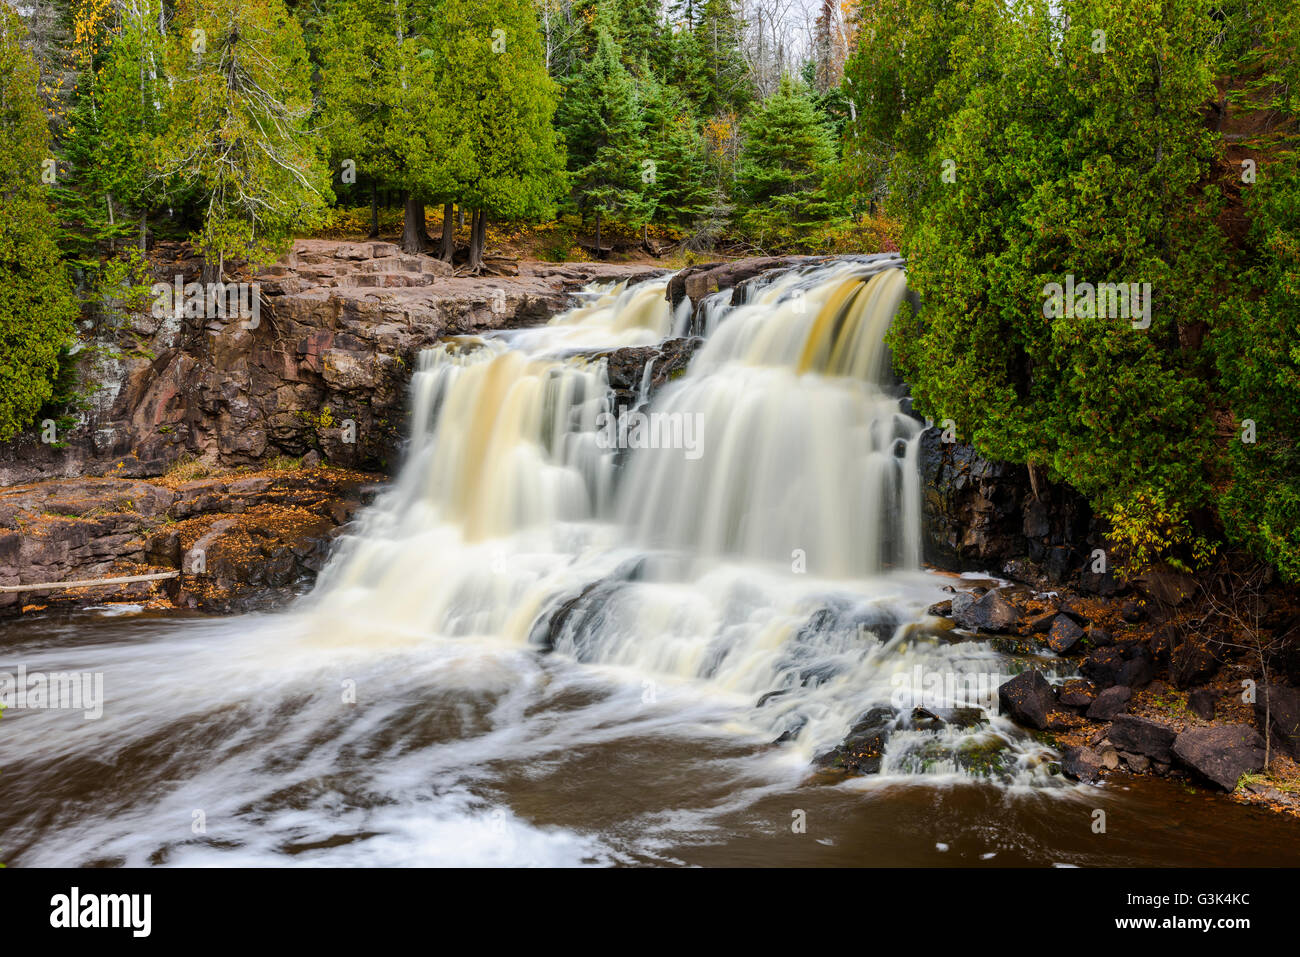 The upper falls of Gooseberry Falls State Park on the north shore of Minnesota. - Stock Image